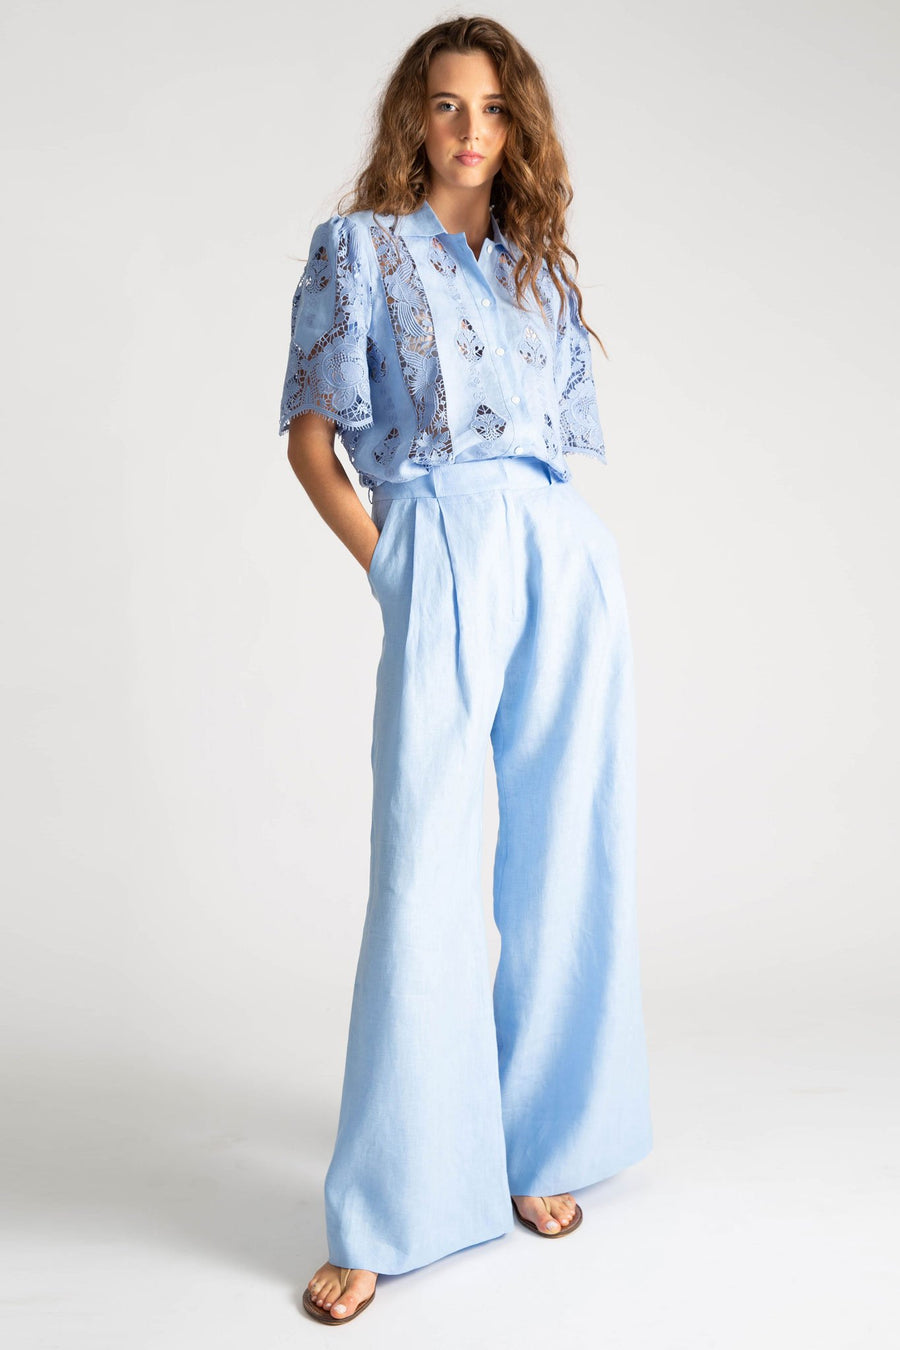 This is a photo of a woman wearing an all blue outfit. Her top is linen with lace embroidery with a button down front, linen collar, and short sleeves. The shirt is tucked into a pair of loose-fit solid blue linen pants with belt loops and side seam pockets. She styles the outfit with nude sandals.